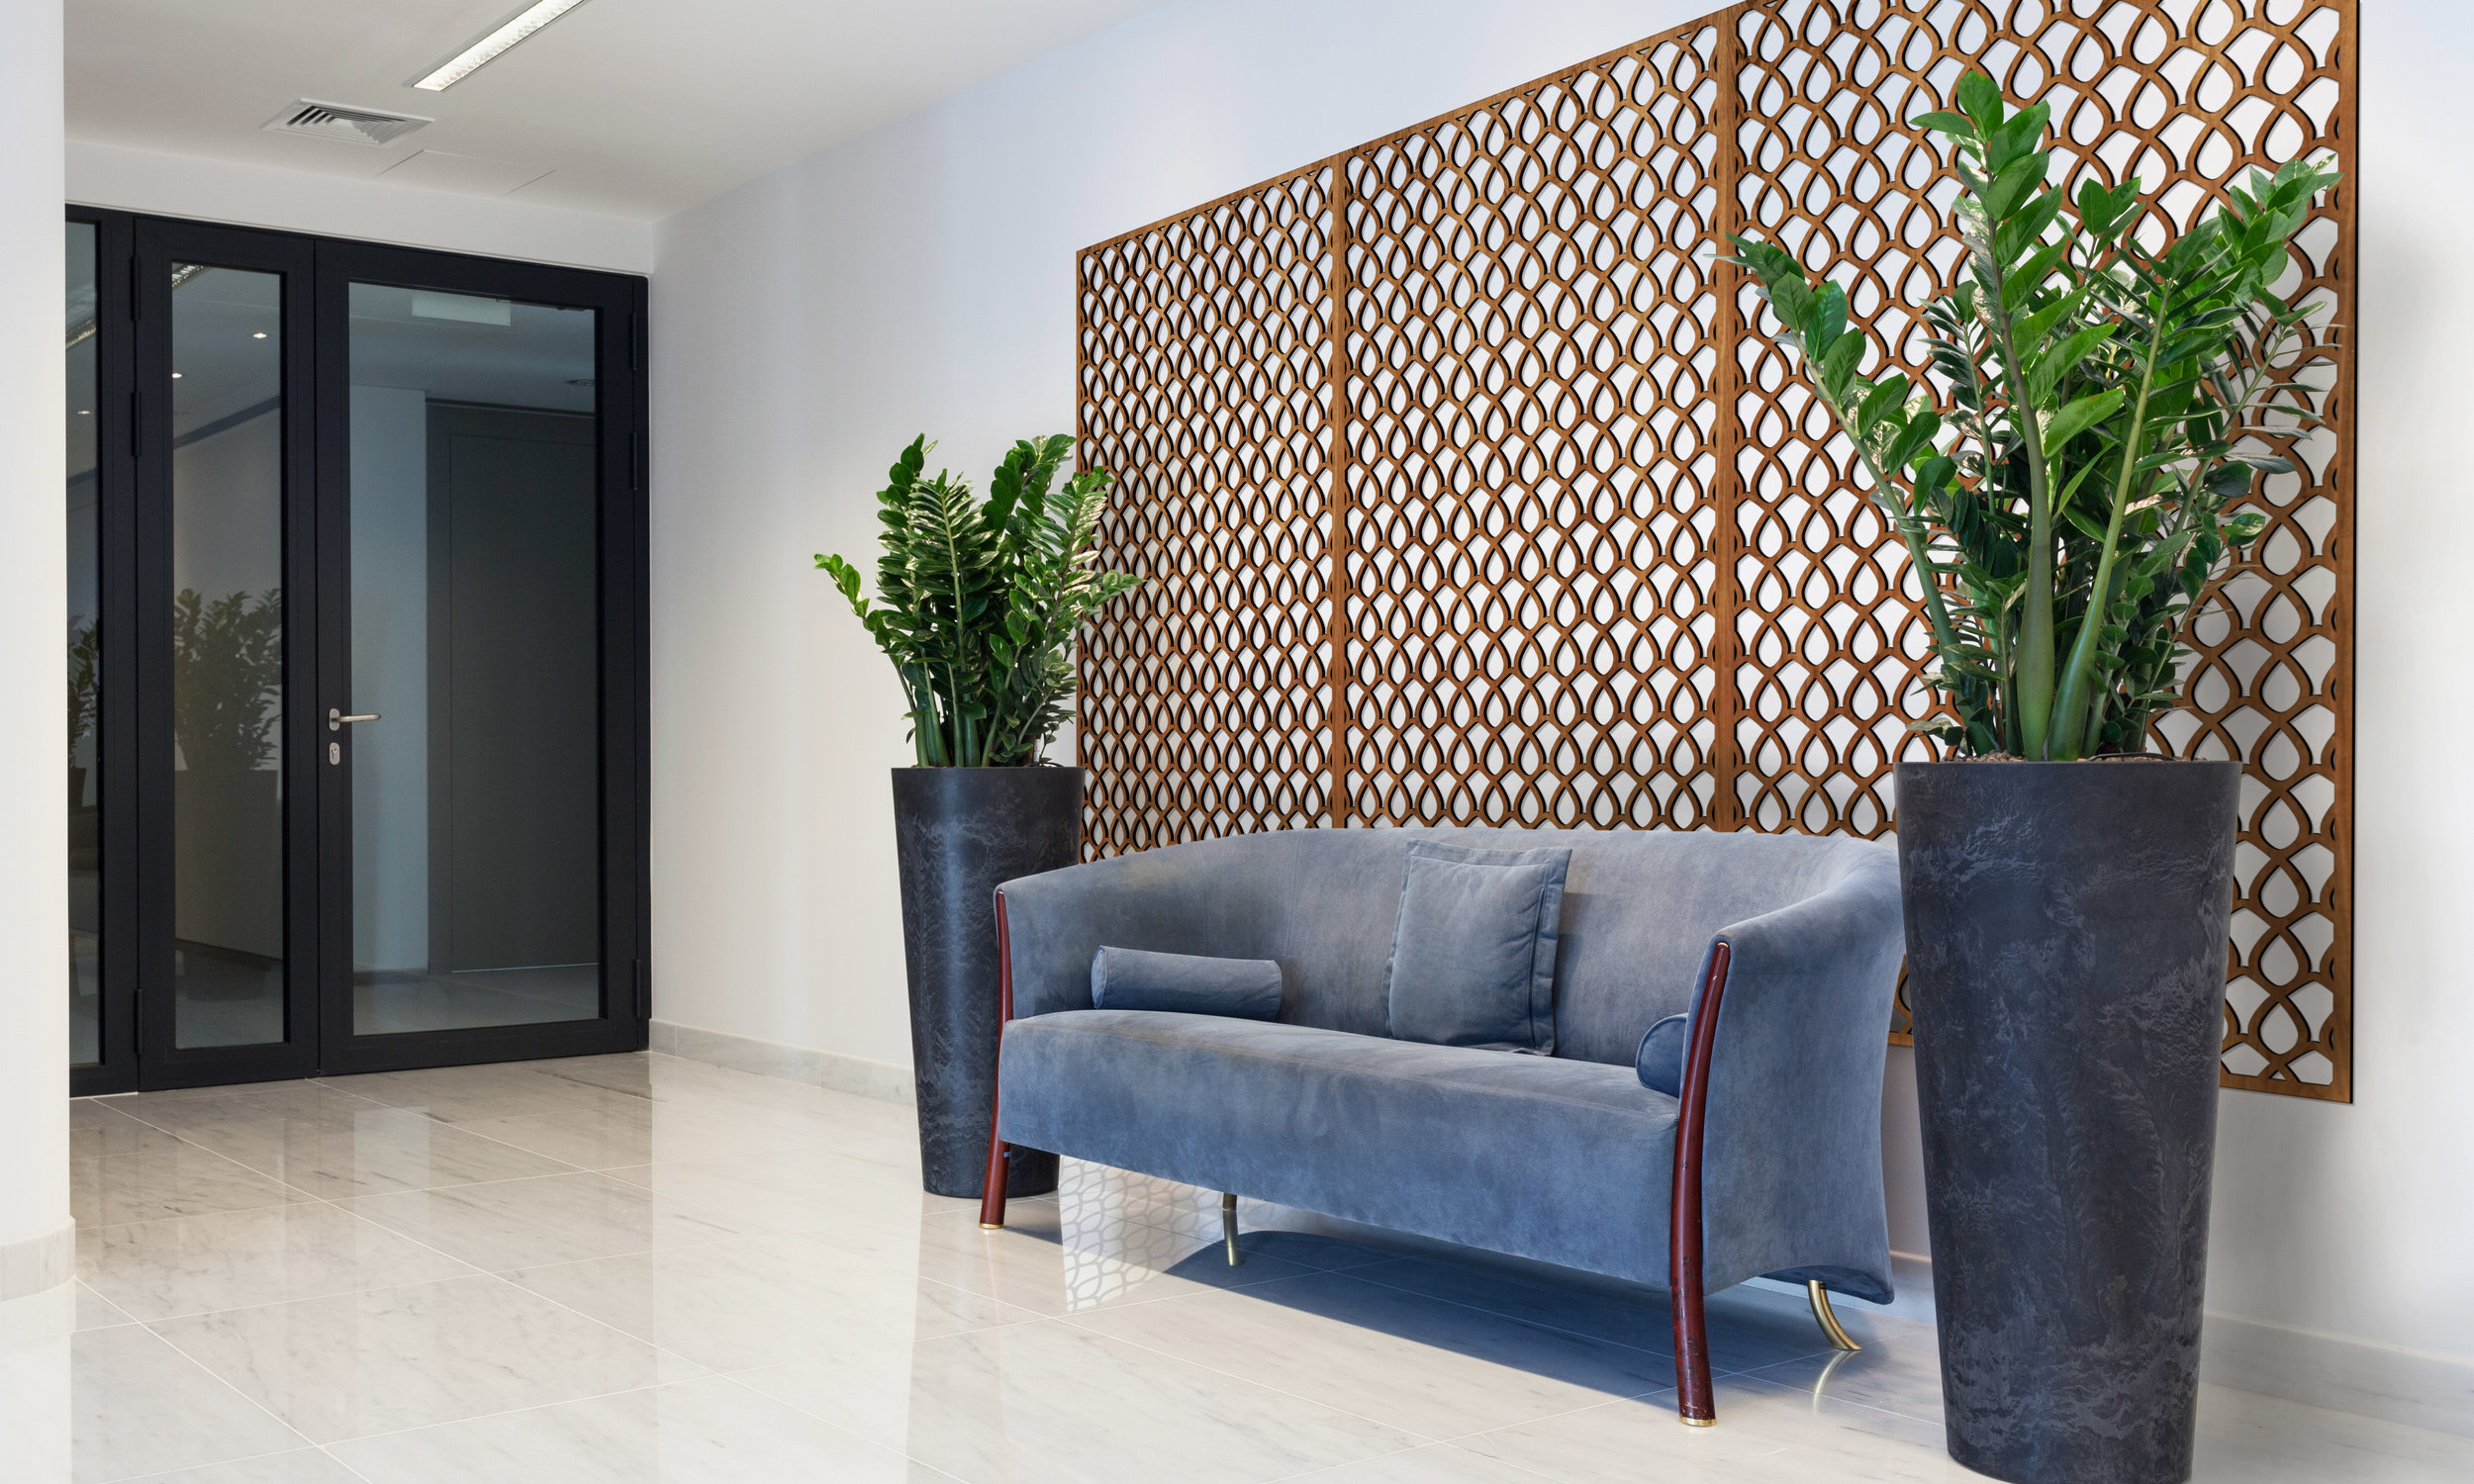 Installation Rendering A   Woven Wire decorative office wall panel - shown in cherry